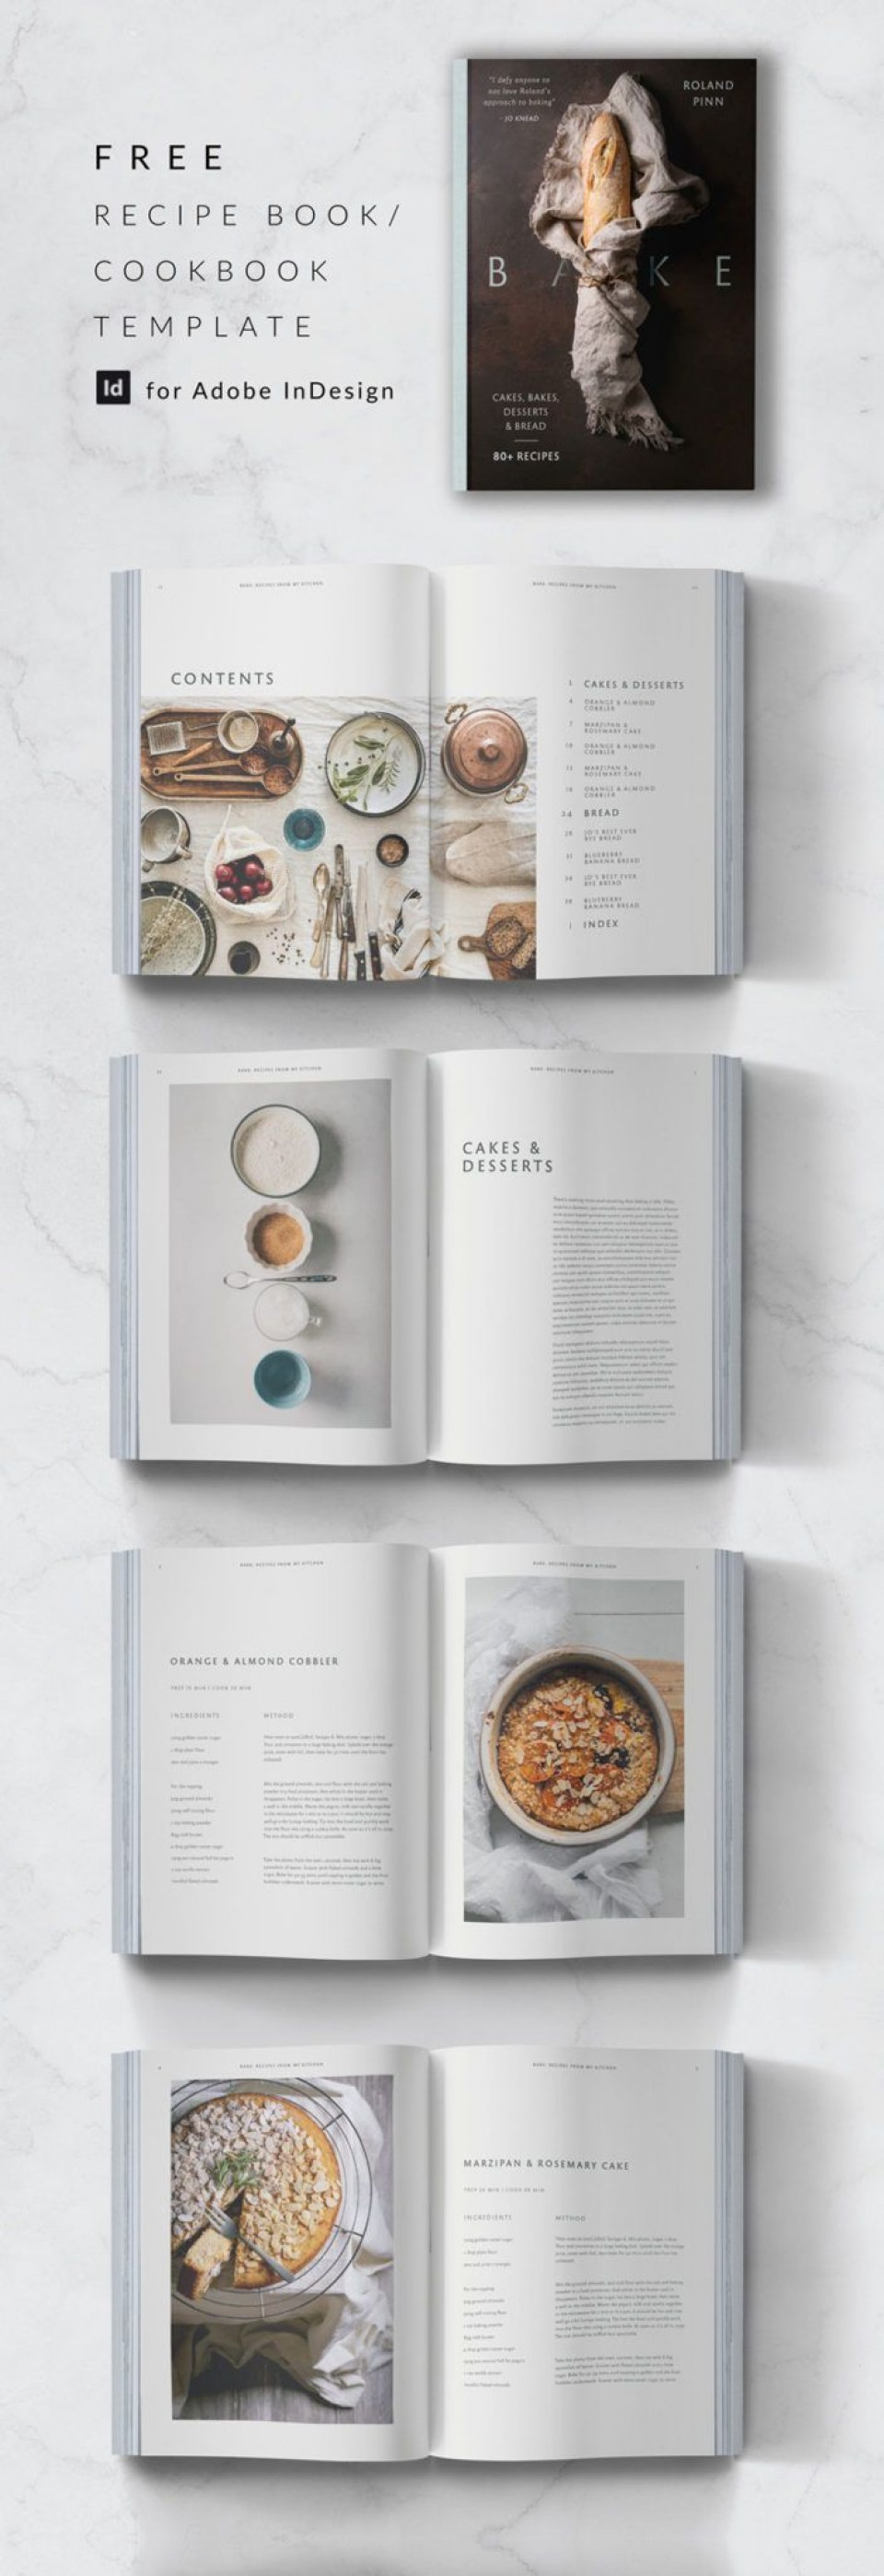 011 Remarkable Create Your Own Cookbook Free Template Sample 960